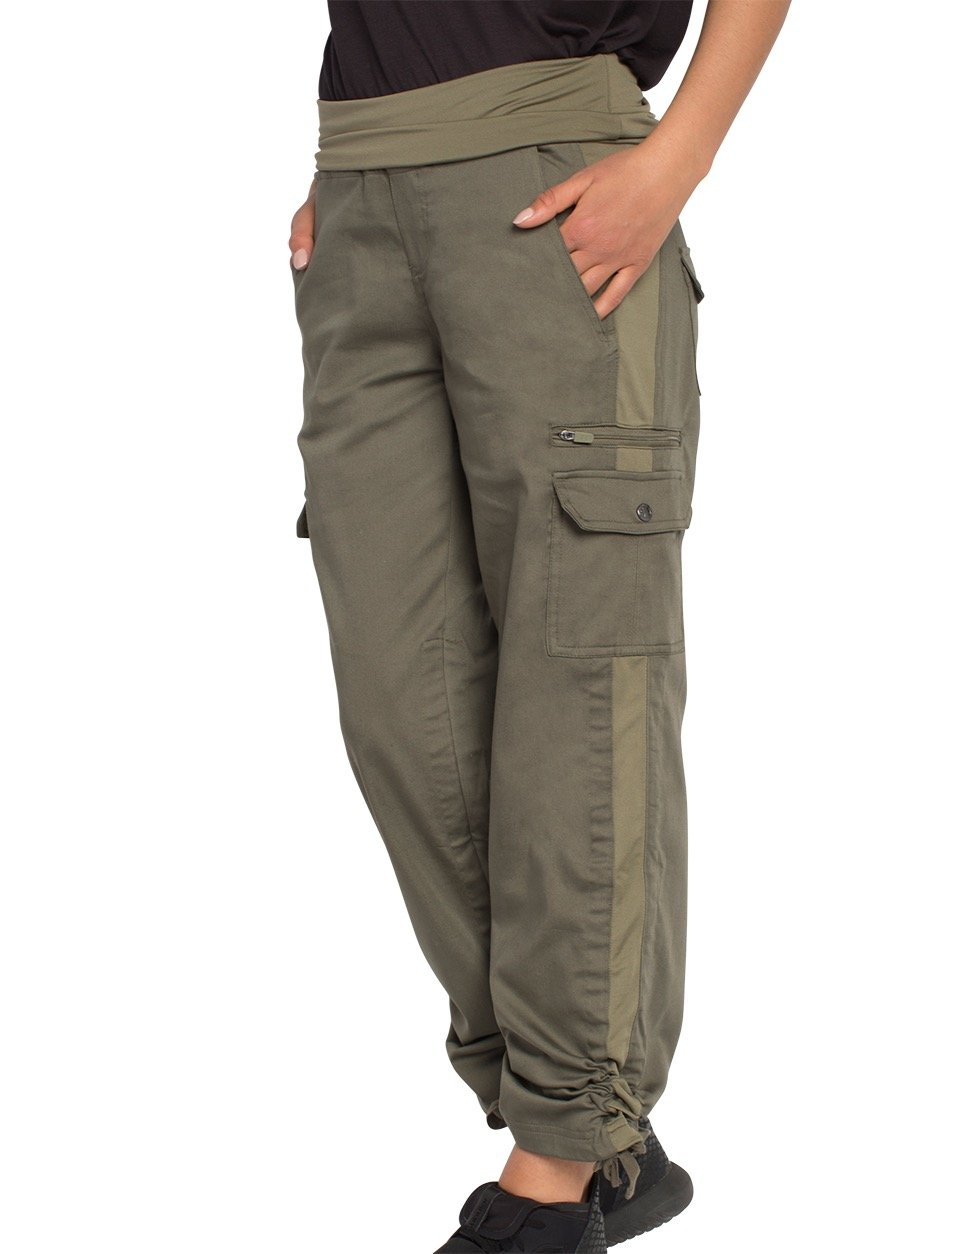 SCOTTeVEST Margaux Cargaux Travel Pants -11 Pockets- Travel Cargo Pants OLV S